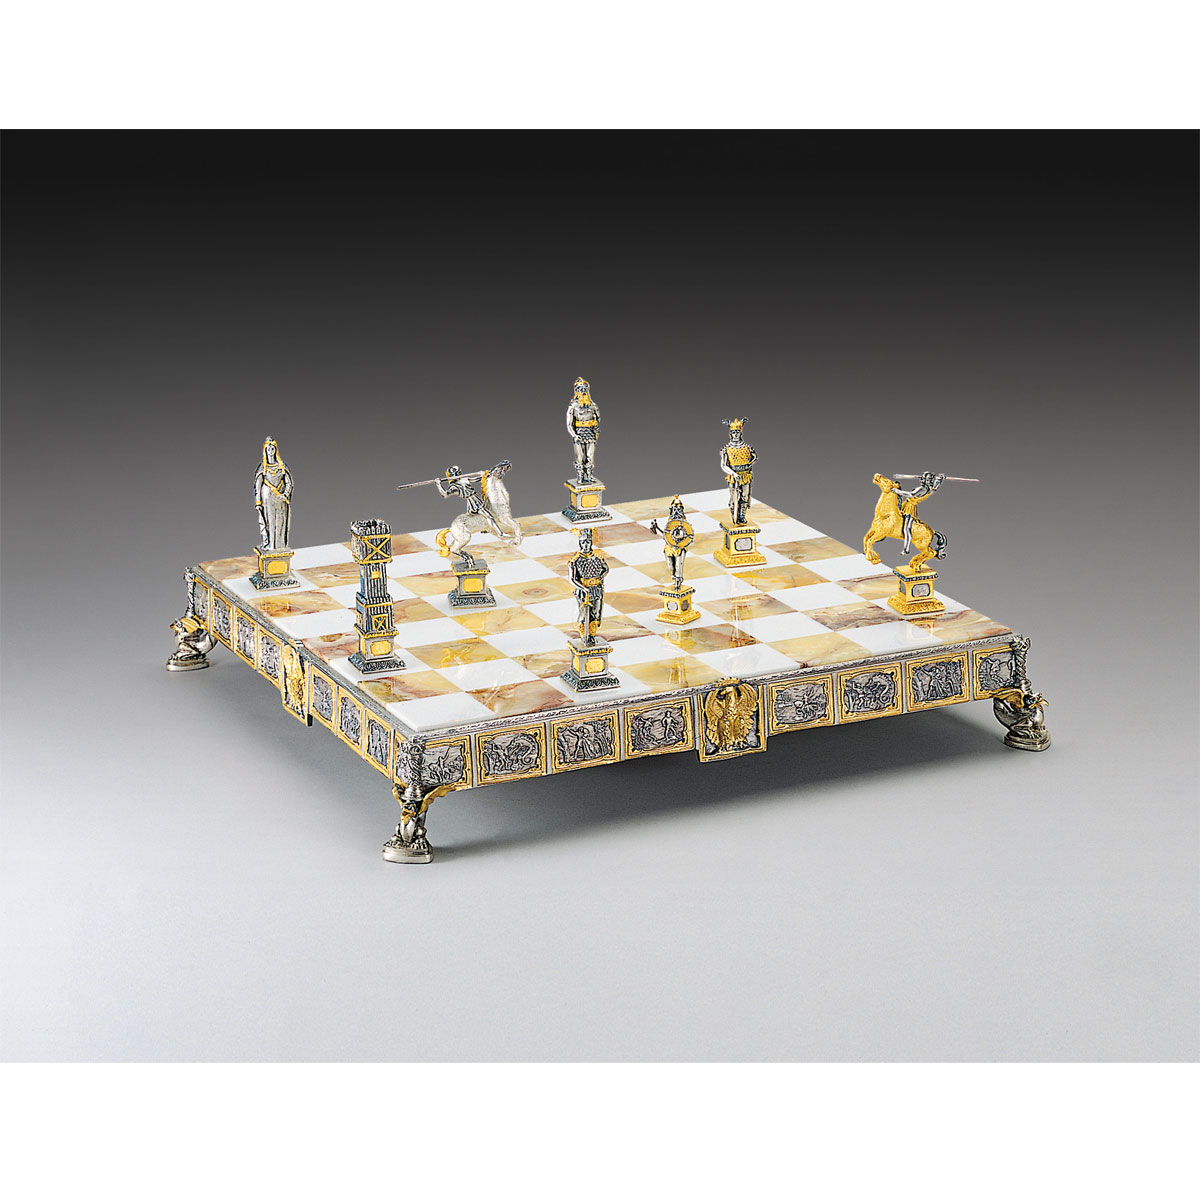 Siegfried King Of The Nibelungs Themed Chess Board | Gold & Silver